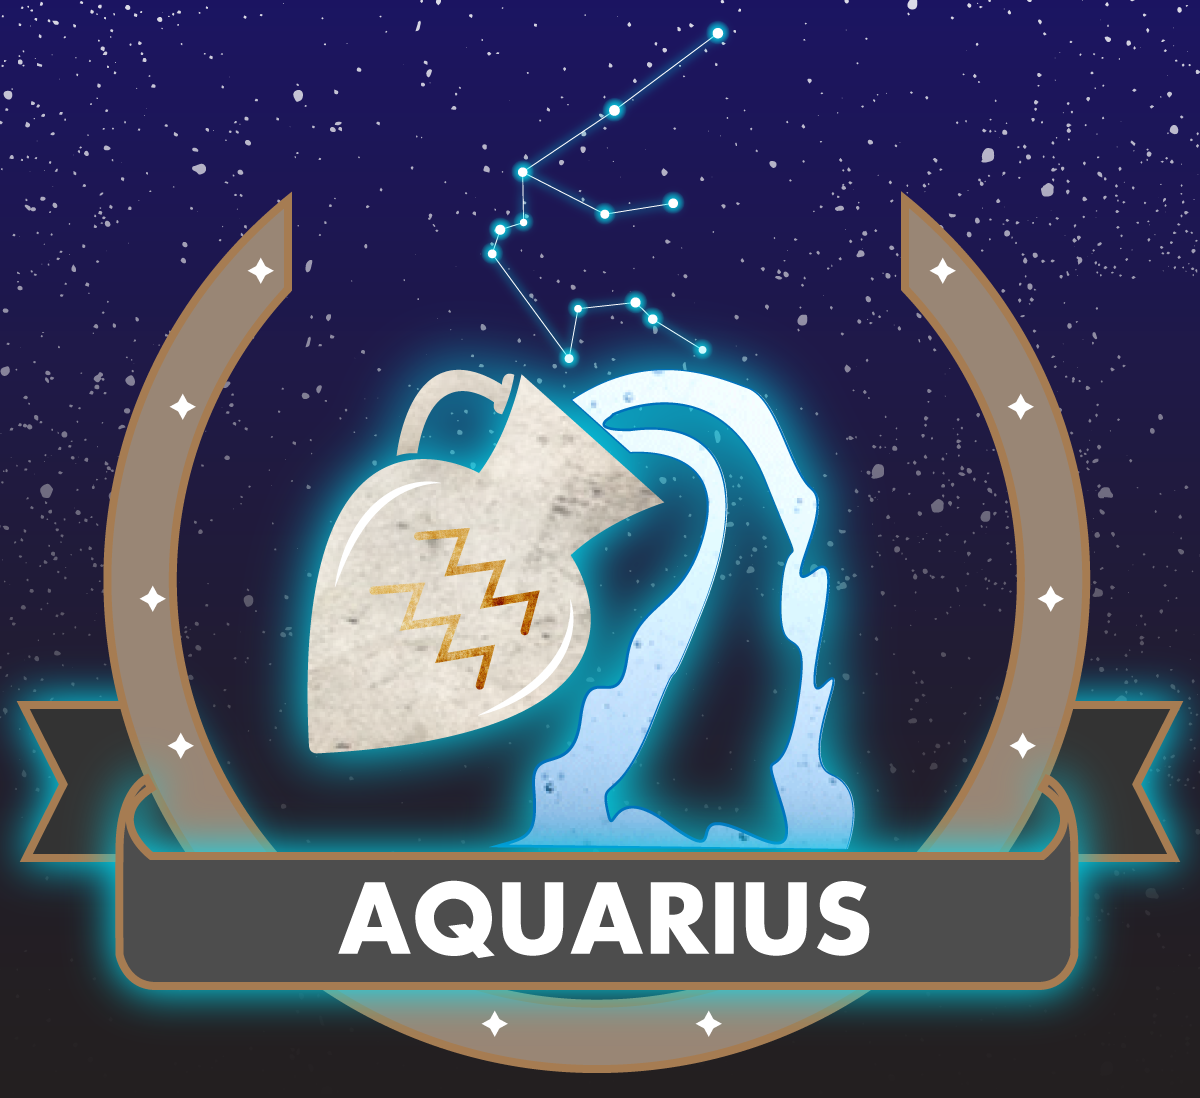 Aquarius Characteristics You Need to Be Aware Of | Exemplore